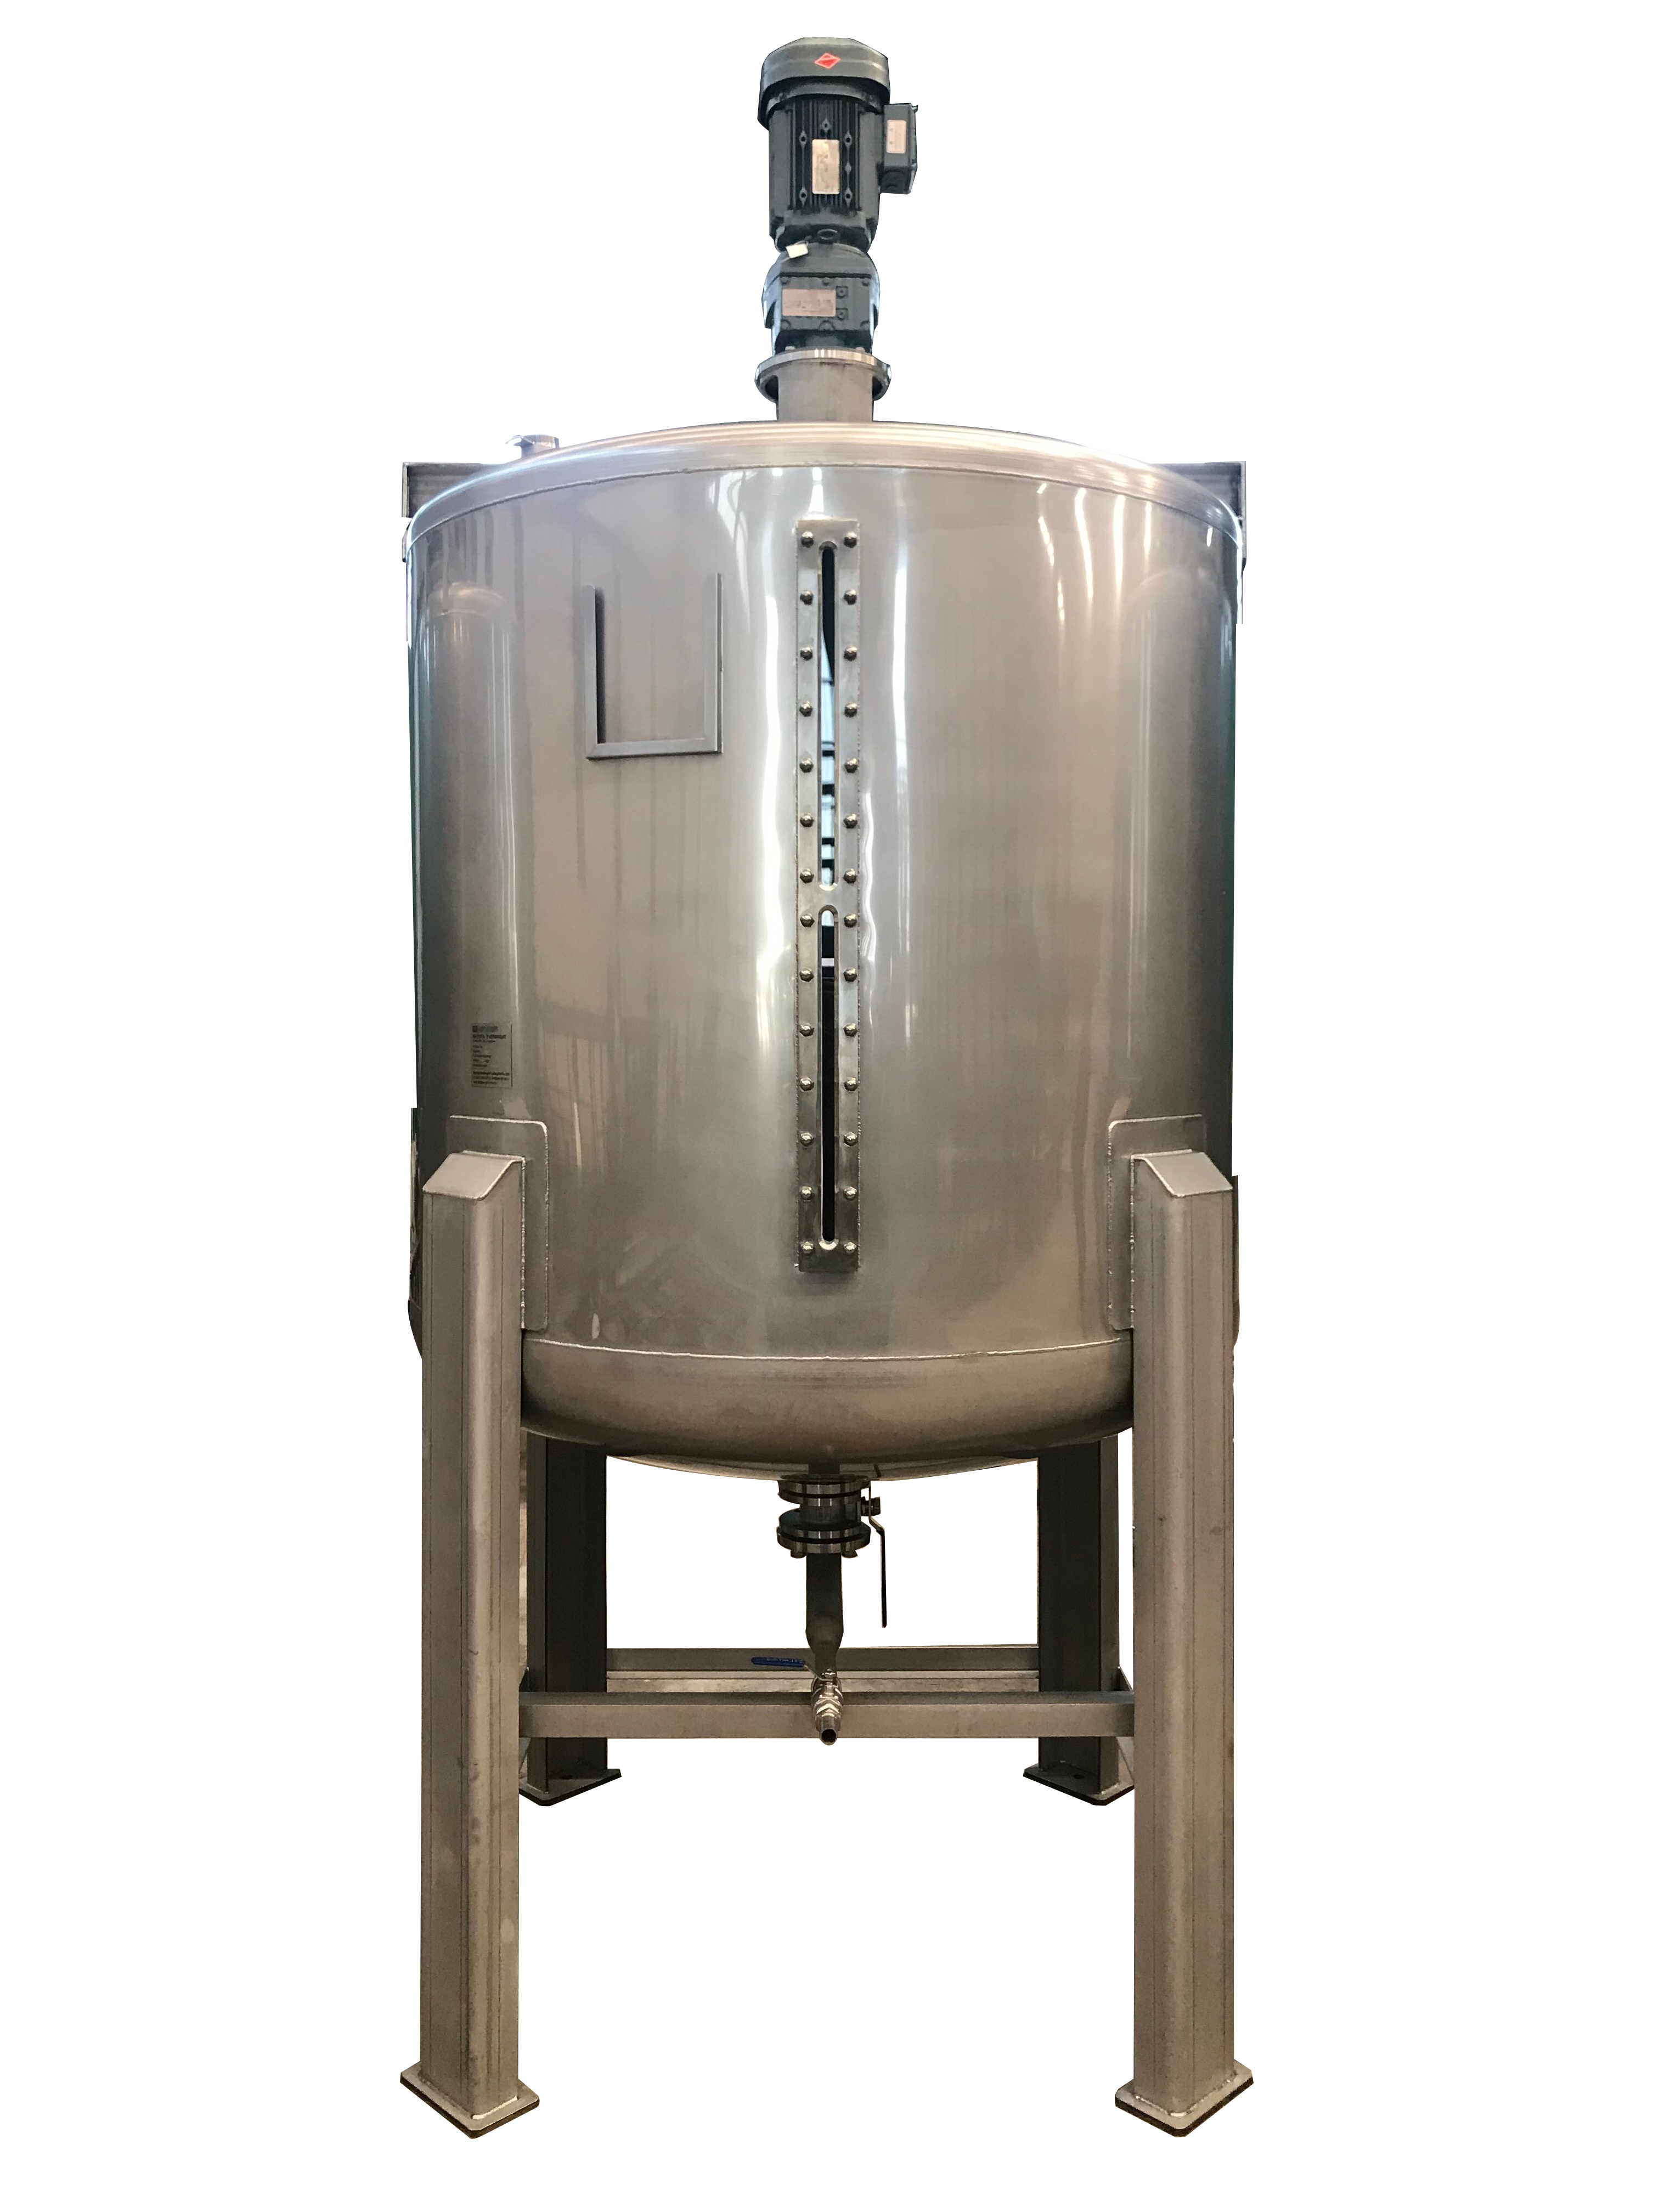 2000L Stainless steel mixing blend tank